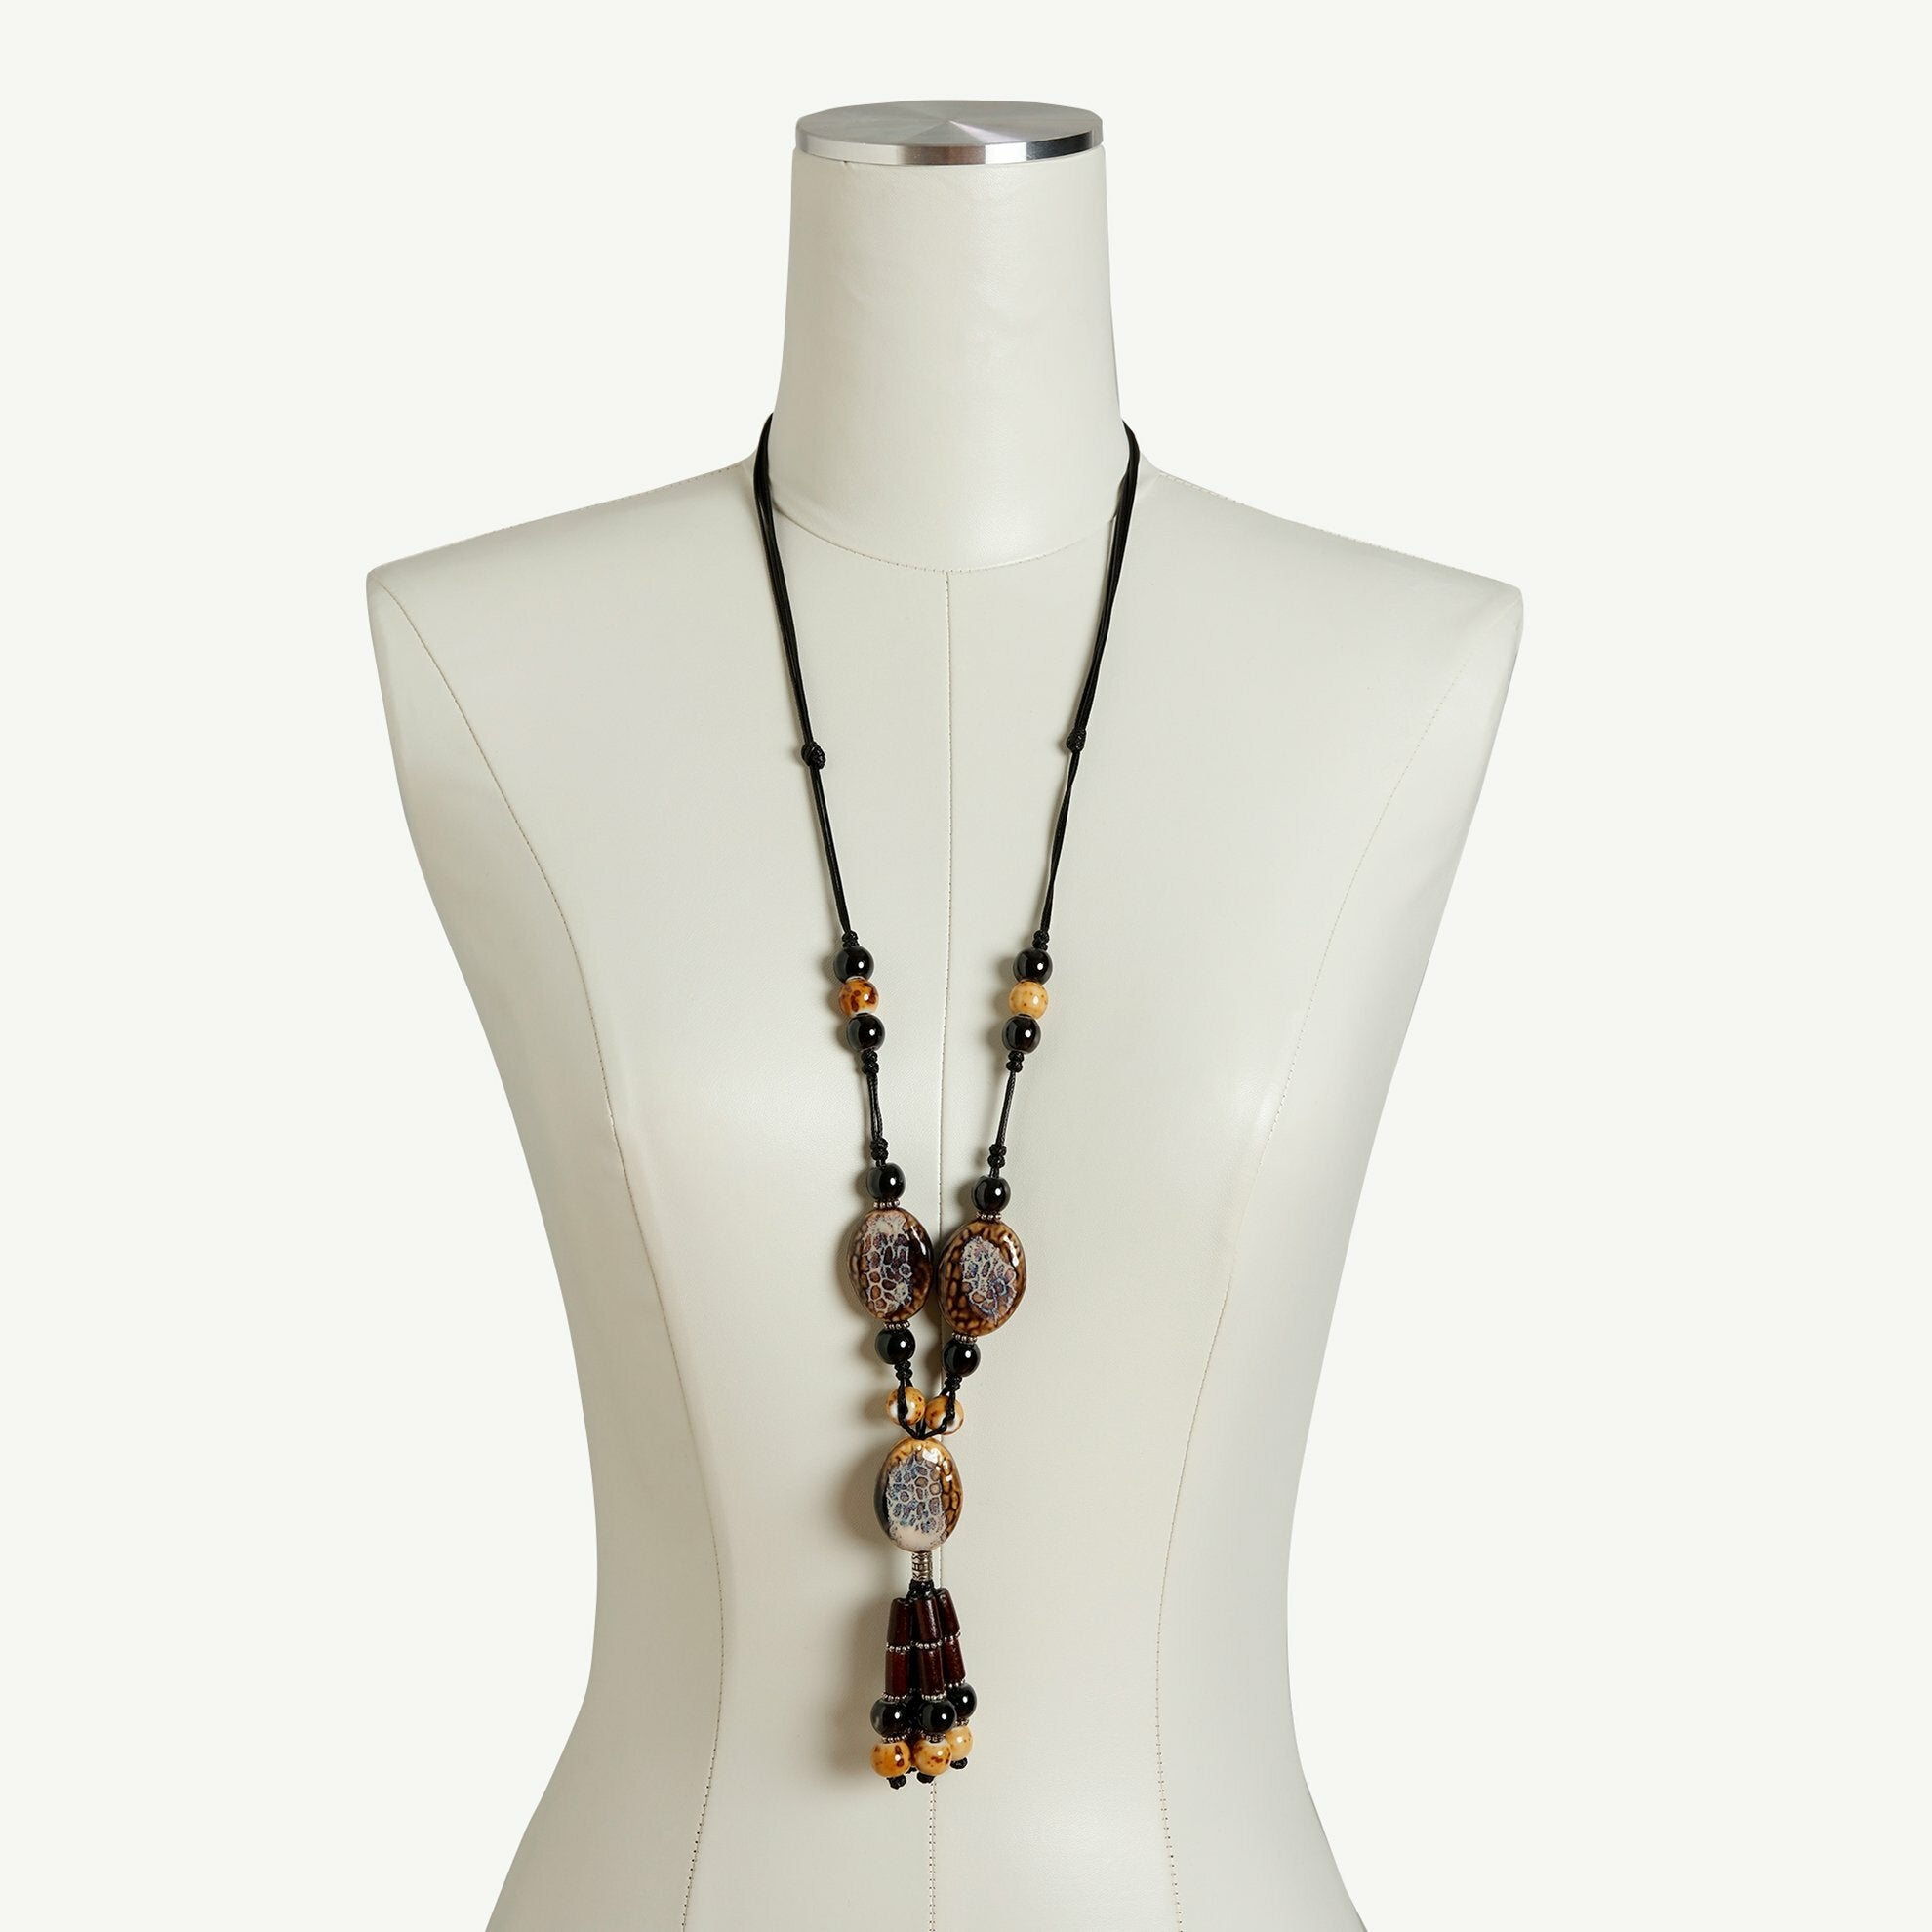 Natural Stone Necklace on Dress Form